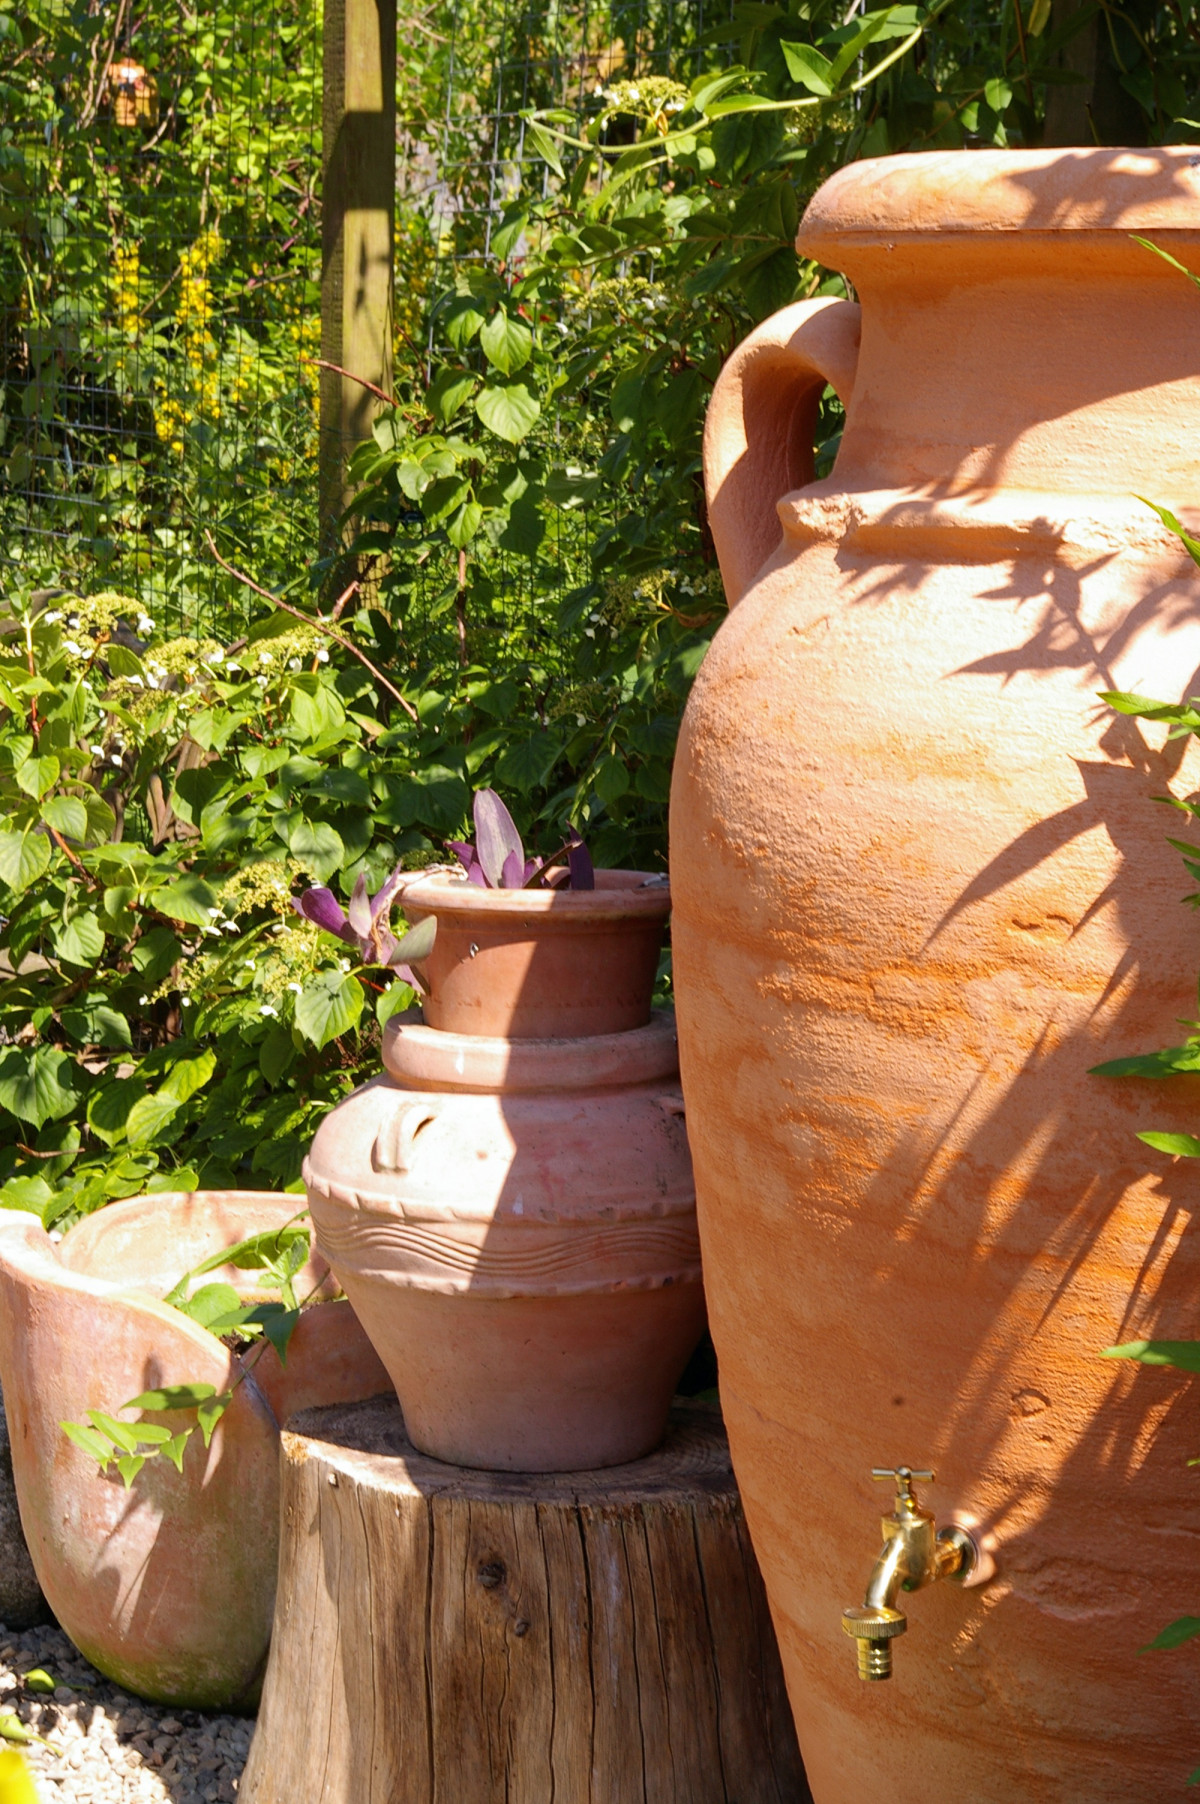 Gartendeko Mediterran Free Images : Tree, Wood, Sunlight, Leaf, Flower, Summer, Green, Mediterranean, Produce, Autumn, Backyard, Rest, Stone Wall, Terracotta, Deco, Flowers, Carving, Yard, Light And Shadow, Gartendeko, Garden Decoration, Garden Design, Amphora, Shadow